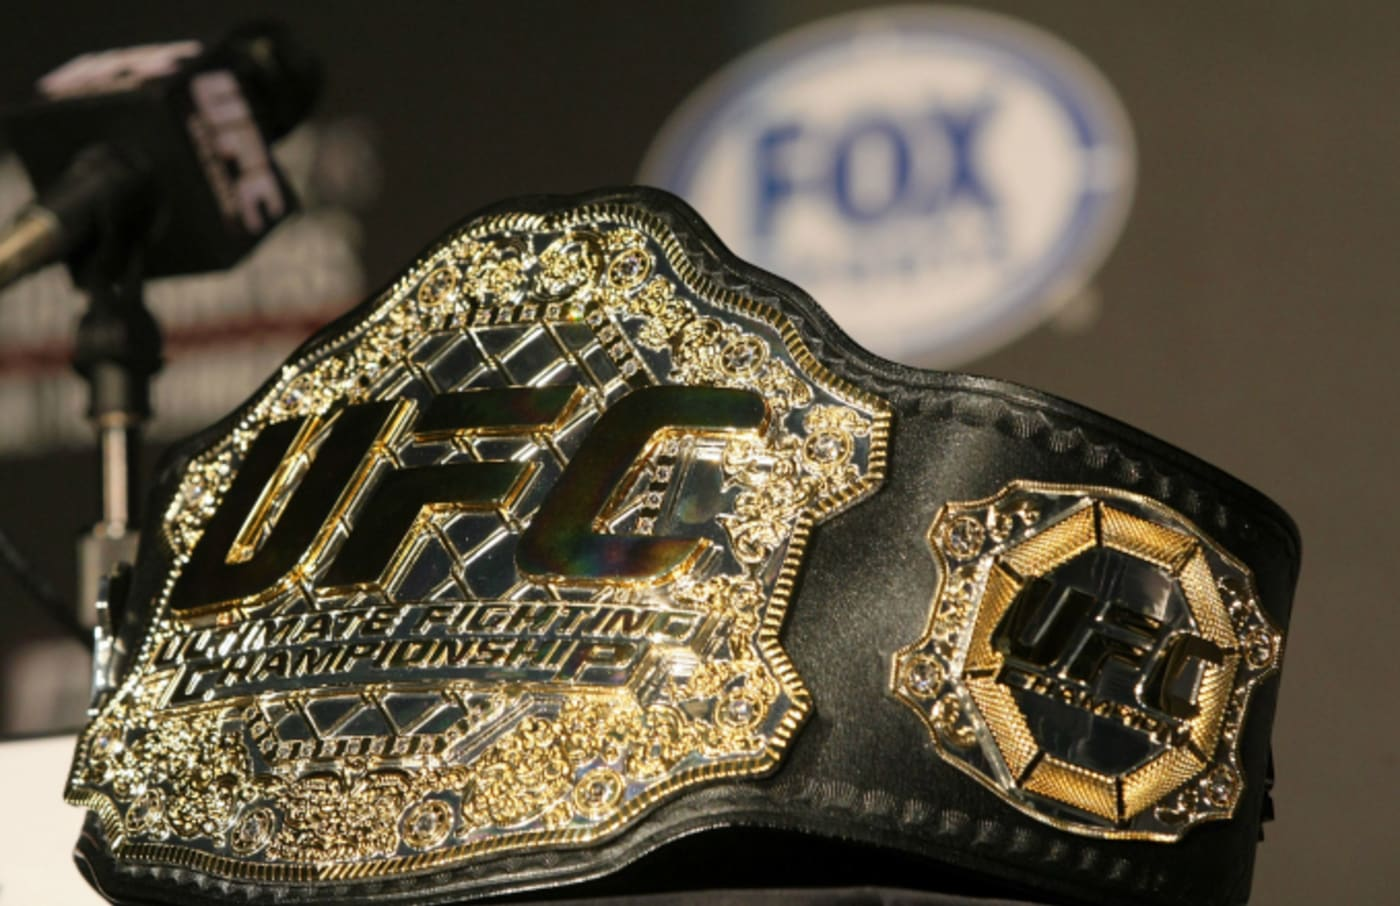 A detailed view of the UFC Championship belt